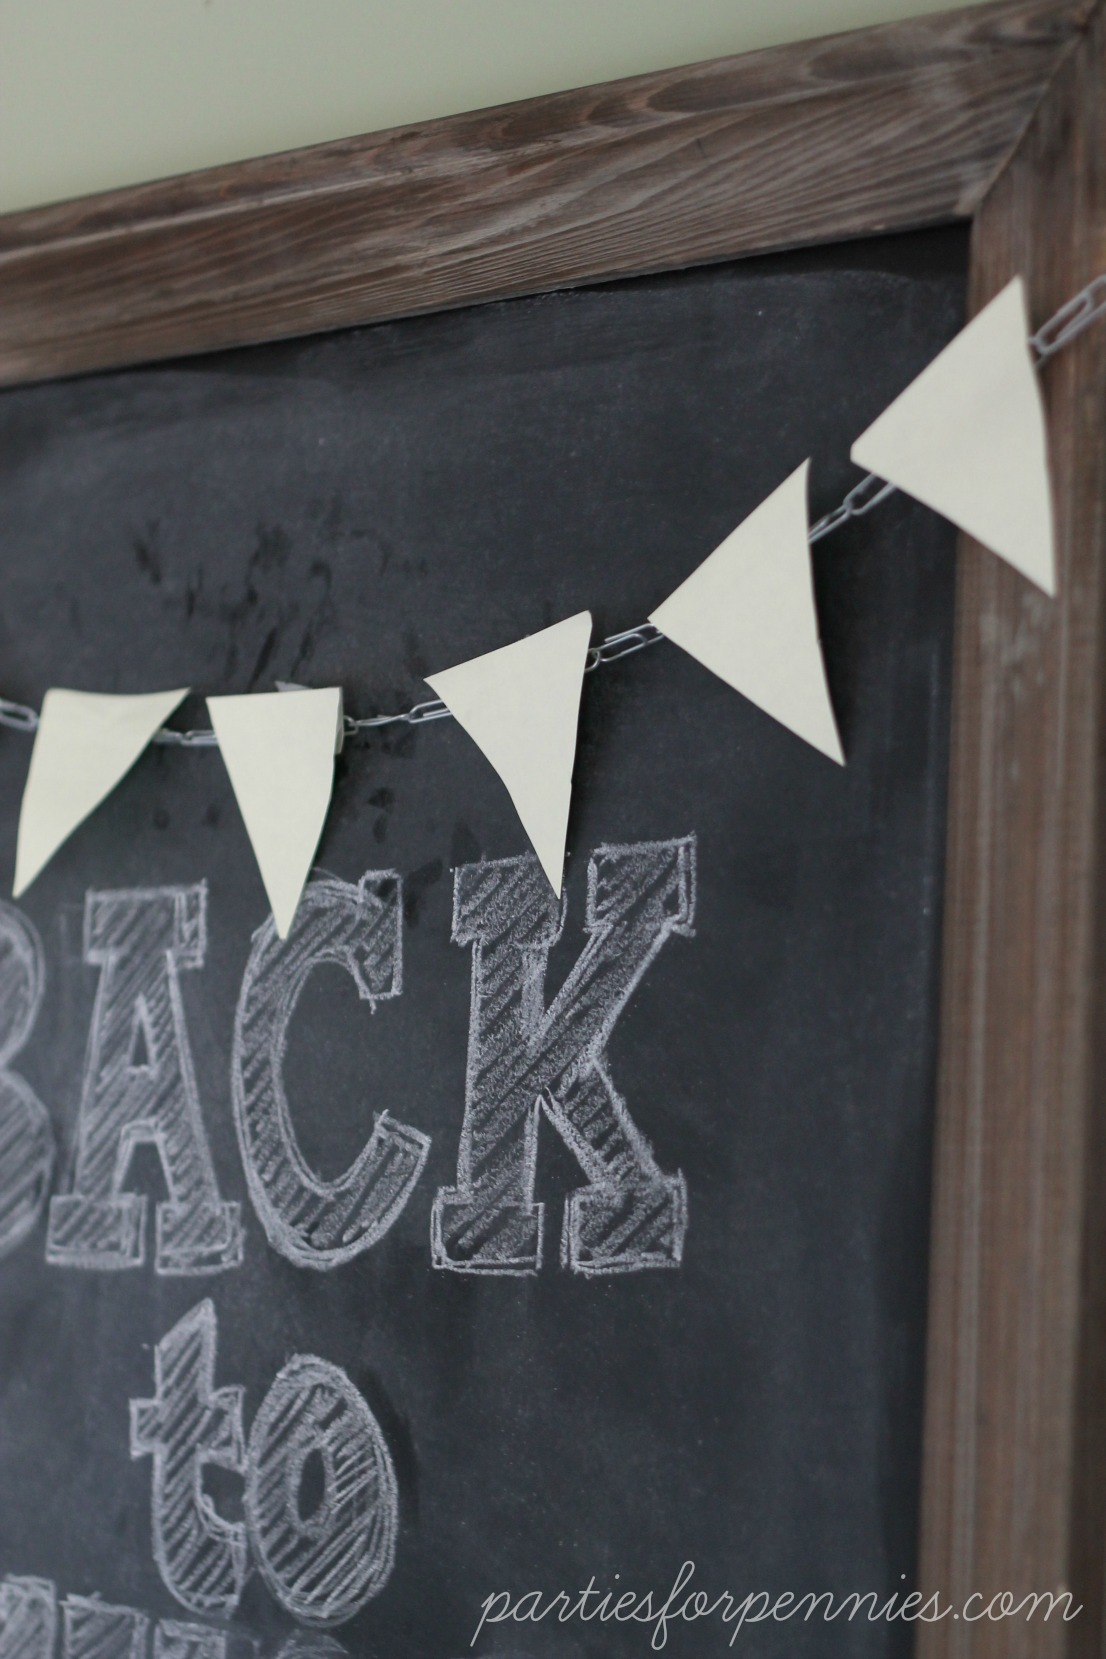 Back to School Party - post-it note bunting by PartiesforPennies.com